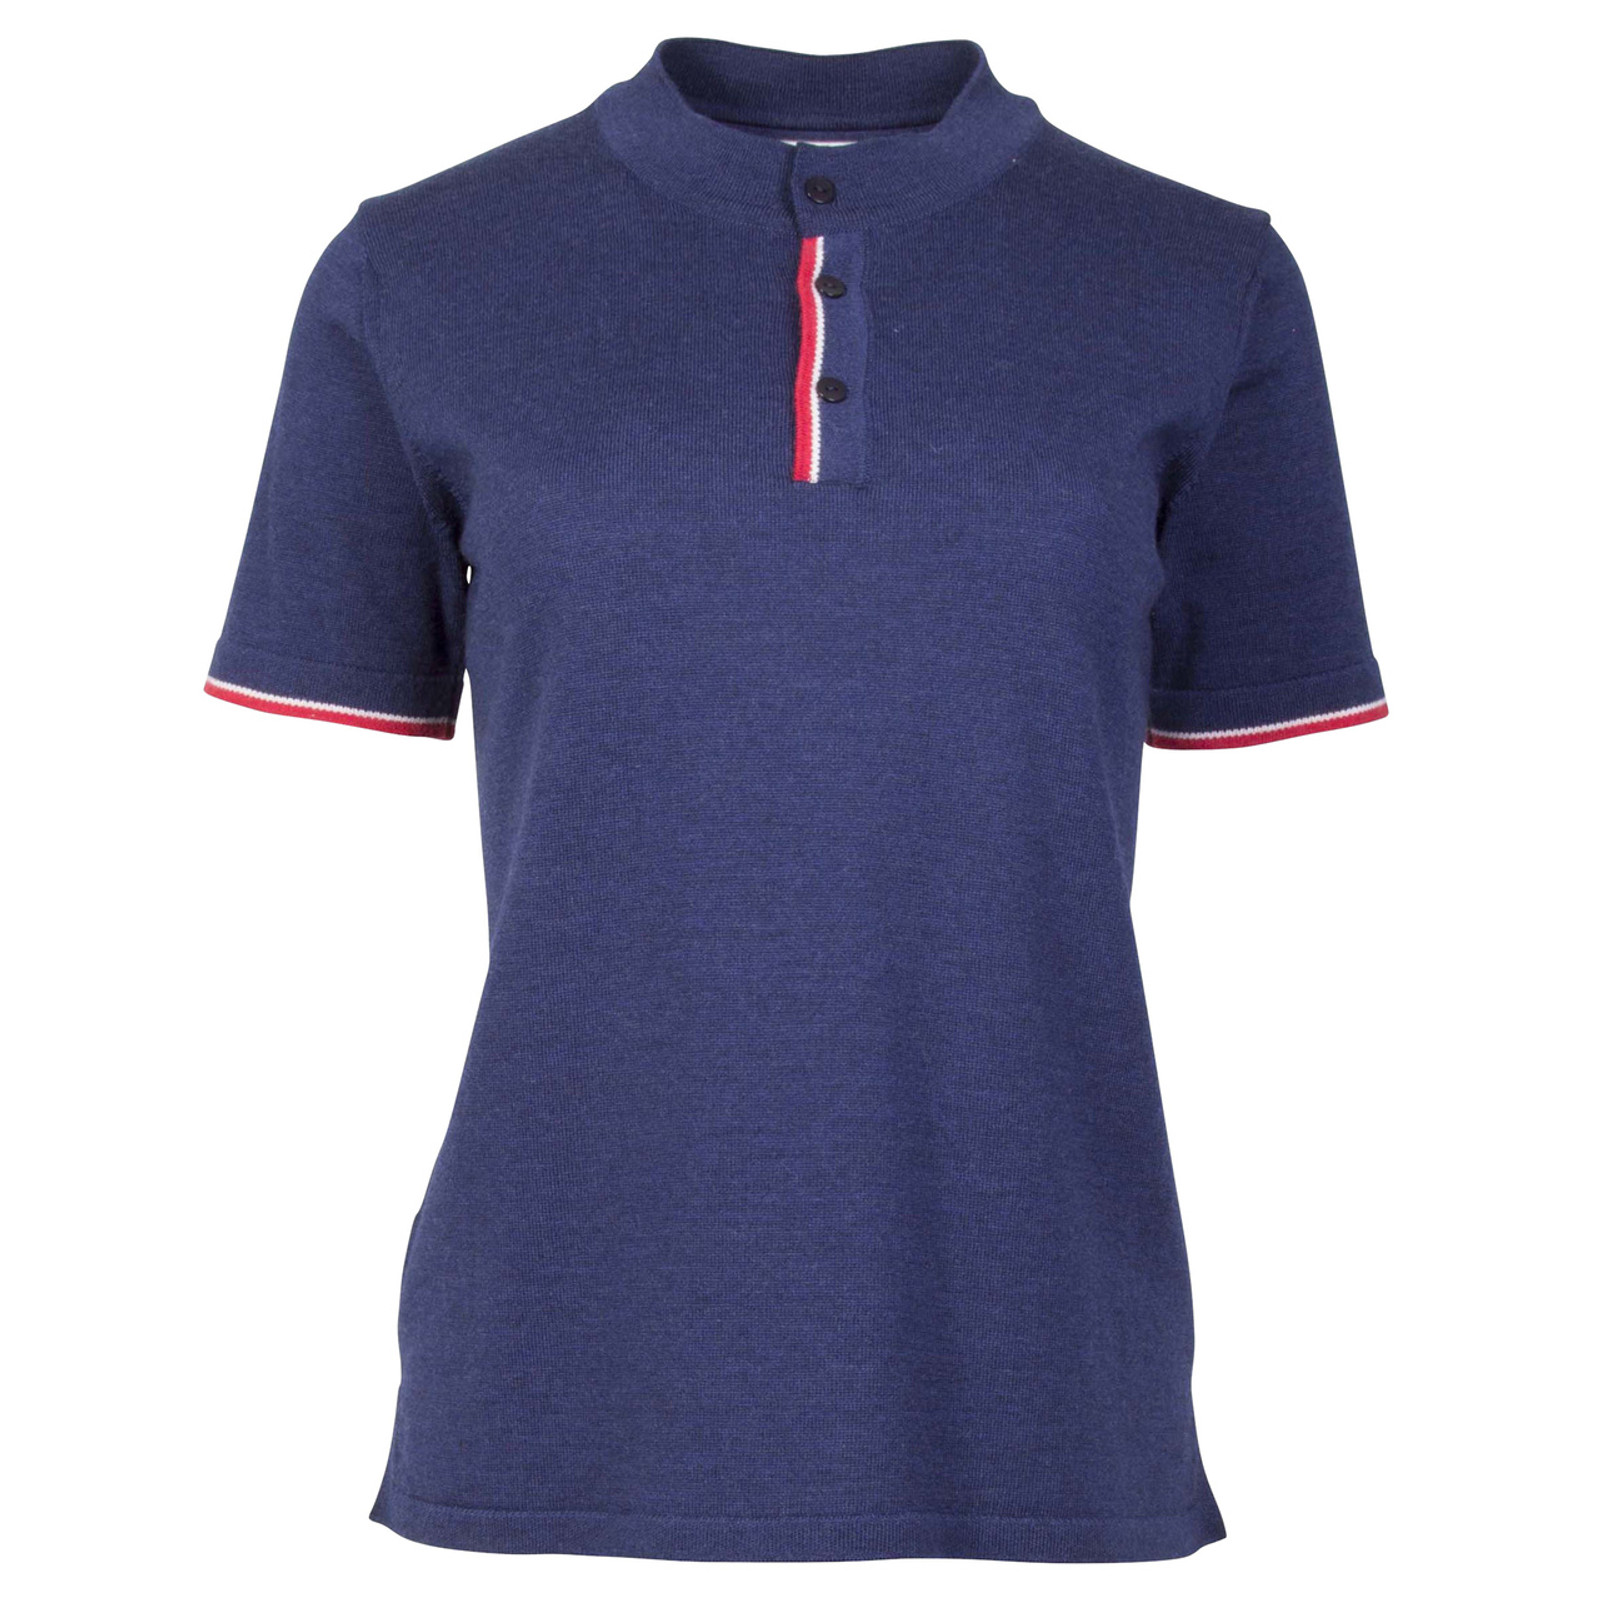 Dale of Norway Fredrikke Ladies T-shirt, in Navy/Red Rose/Off White, 93841-C